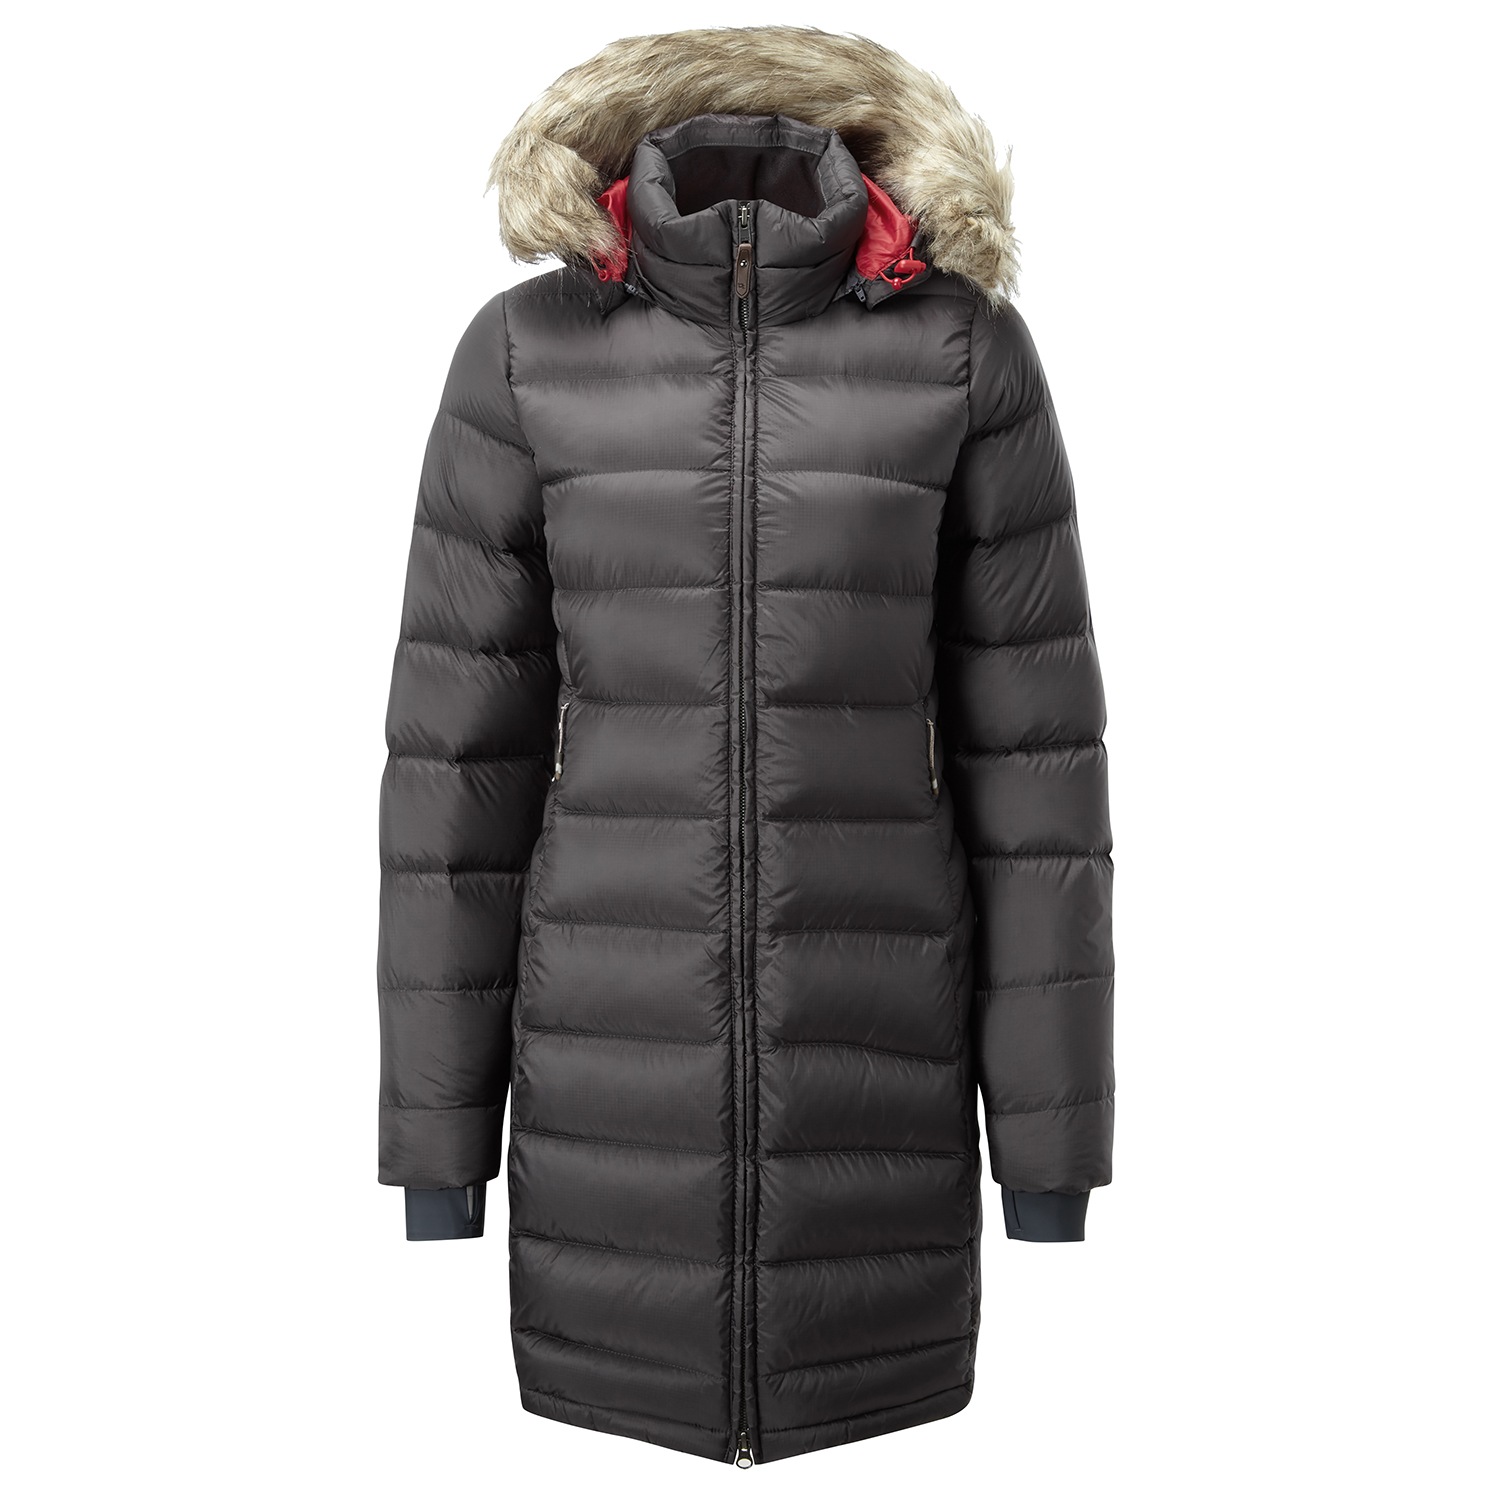 Jackets & Gilets available from Blackleaf